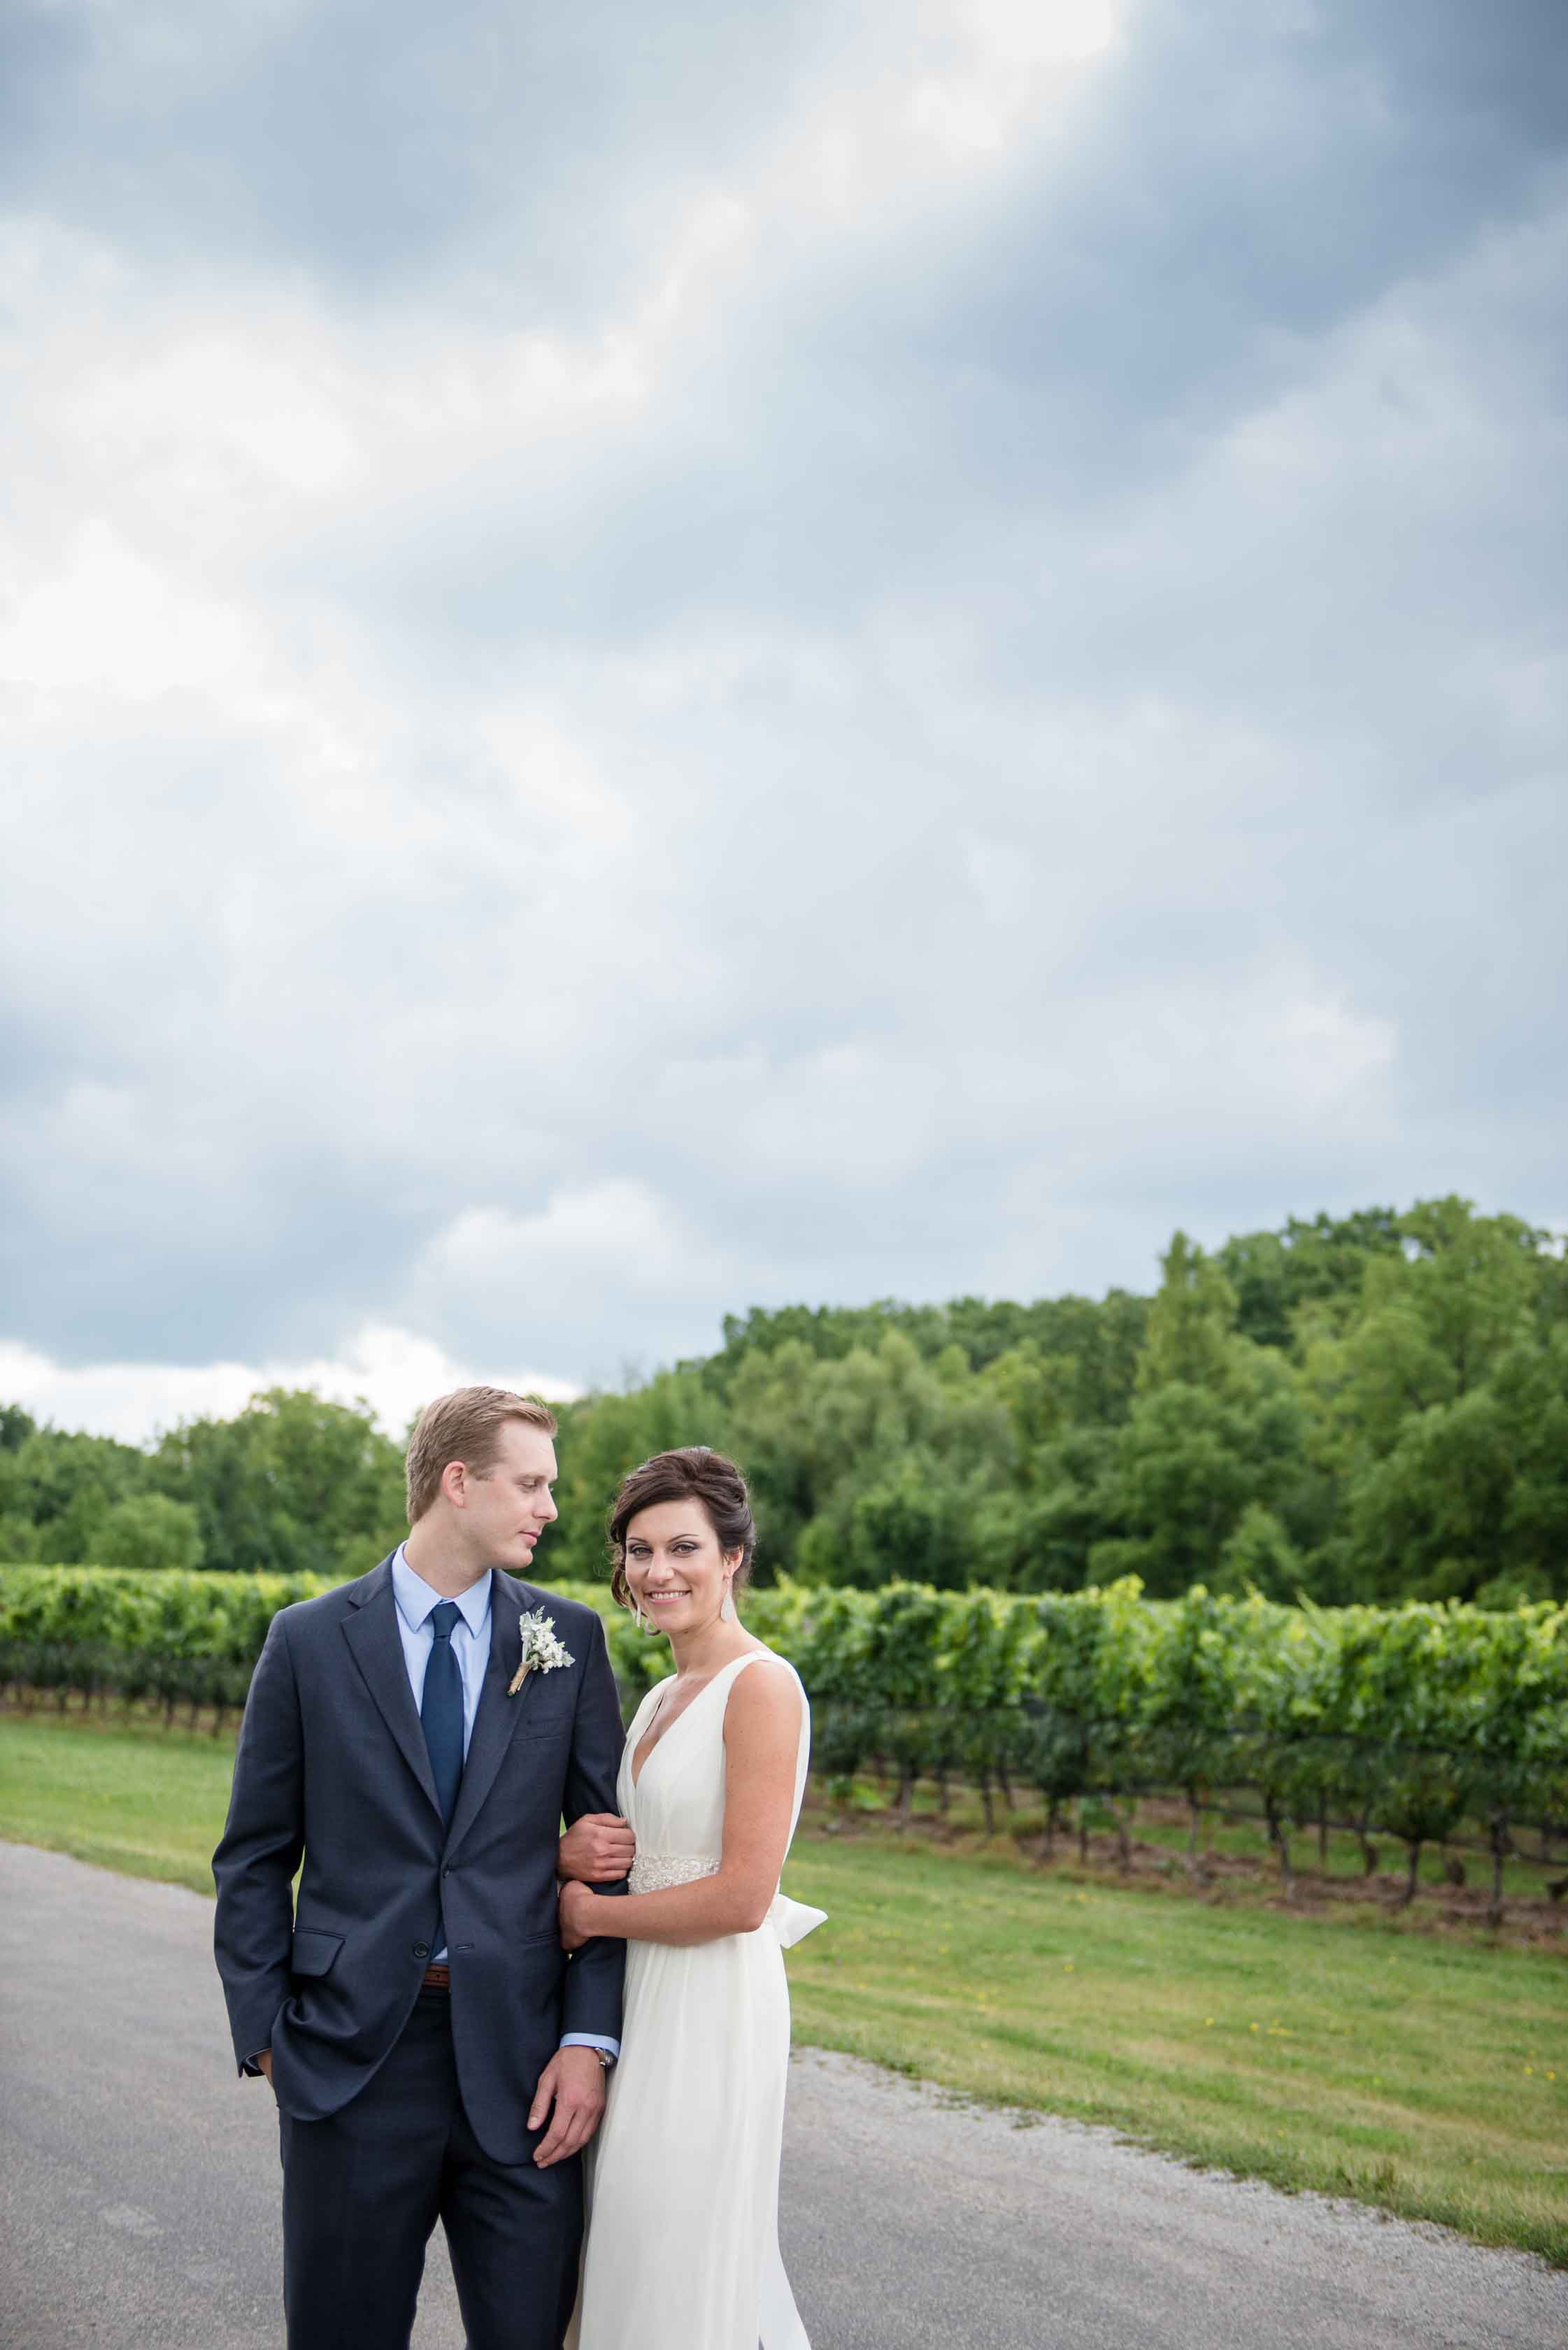 Sher and Brian Wedding by Sugar Photo Studios (54 of 322).jpg